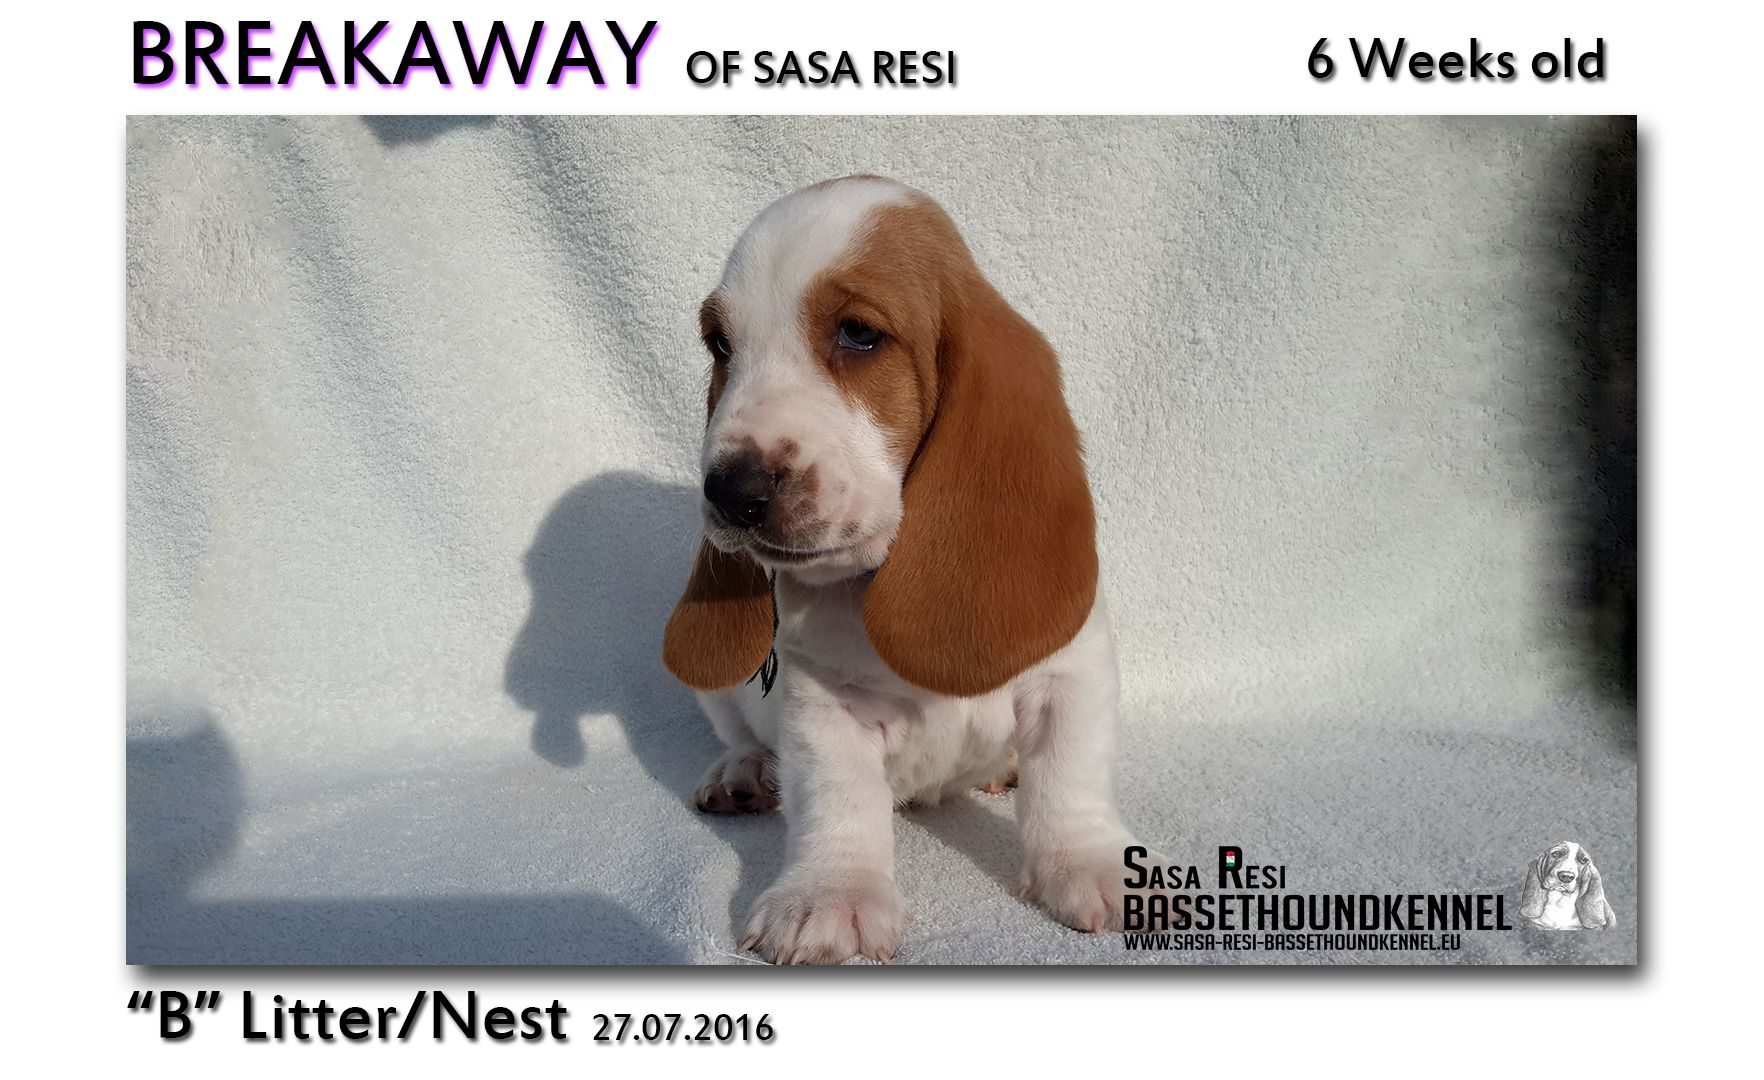 1 compressed 7 SaSa ReSi Bassethoundkennel